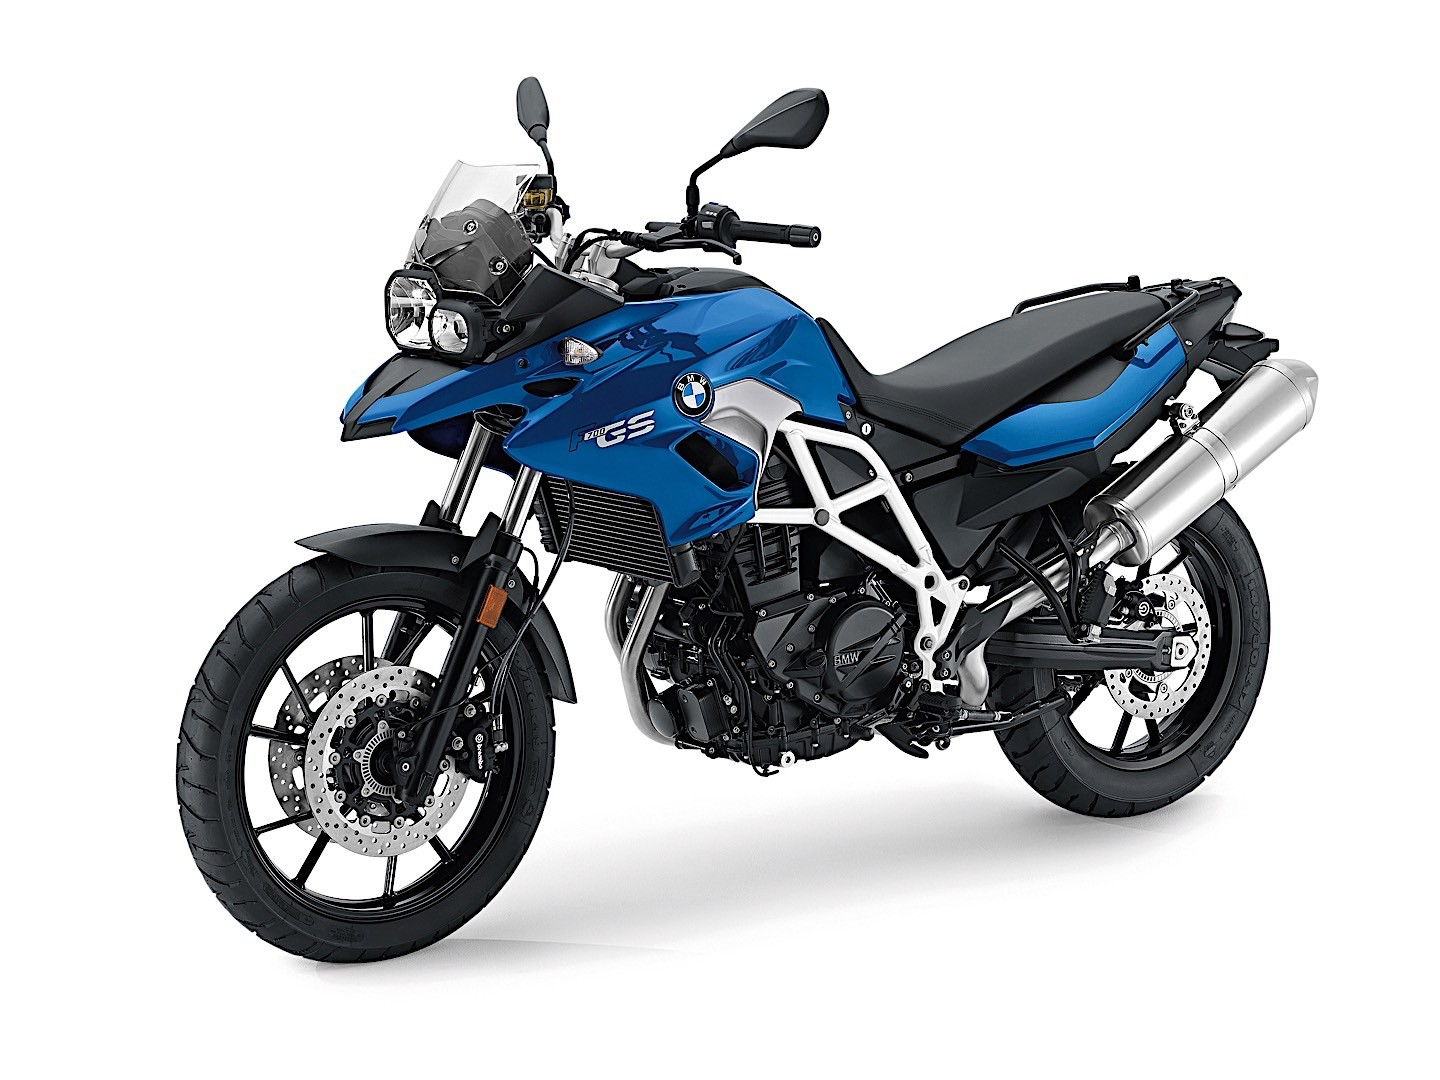 Almost all 2018 BMW Motorcycles Get Updates - autoevolution